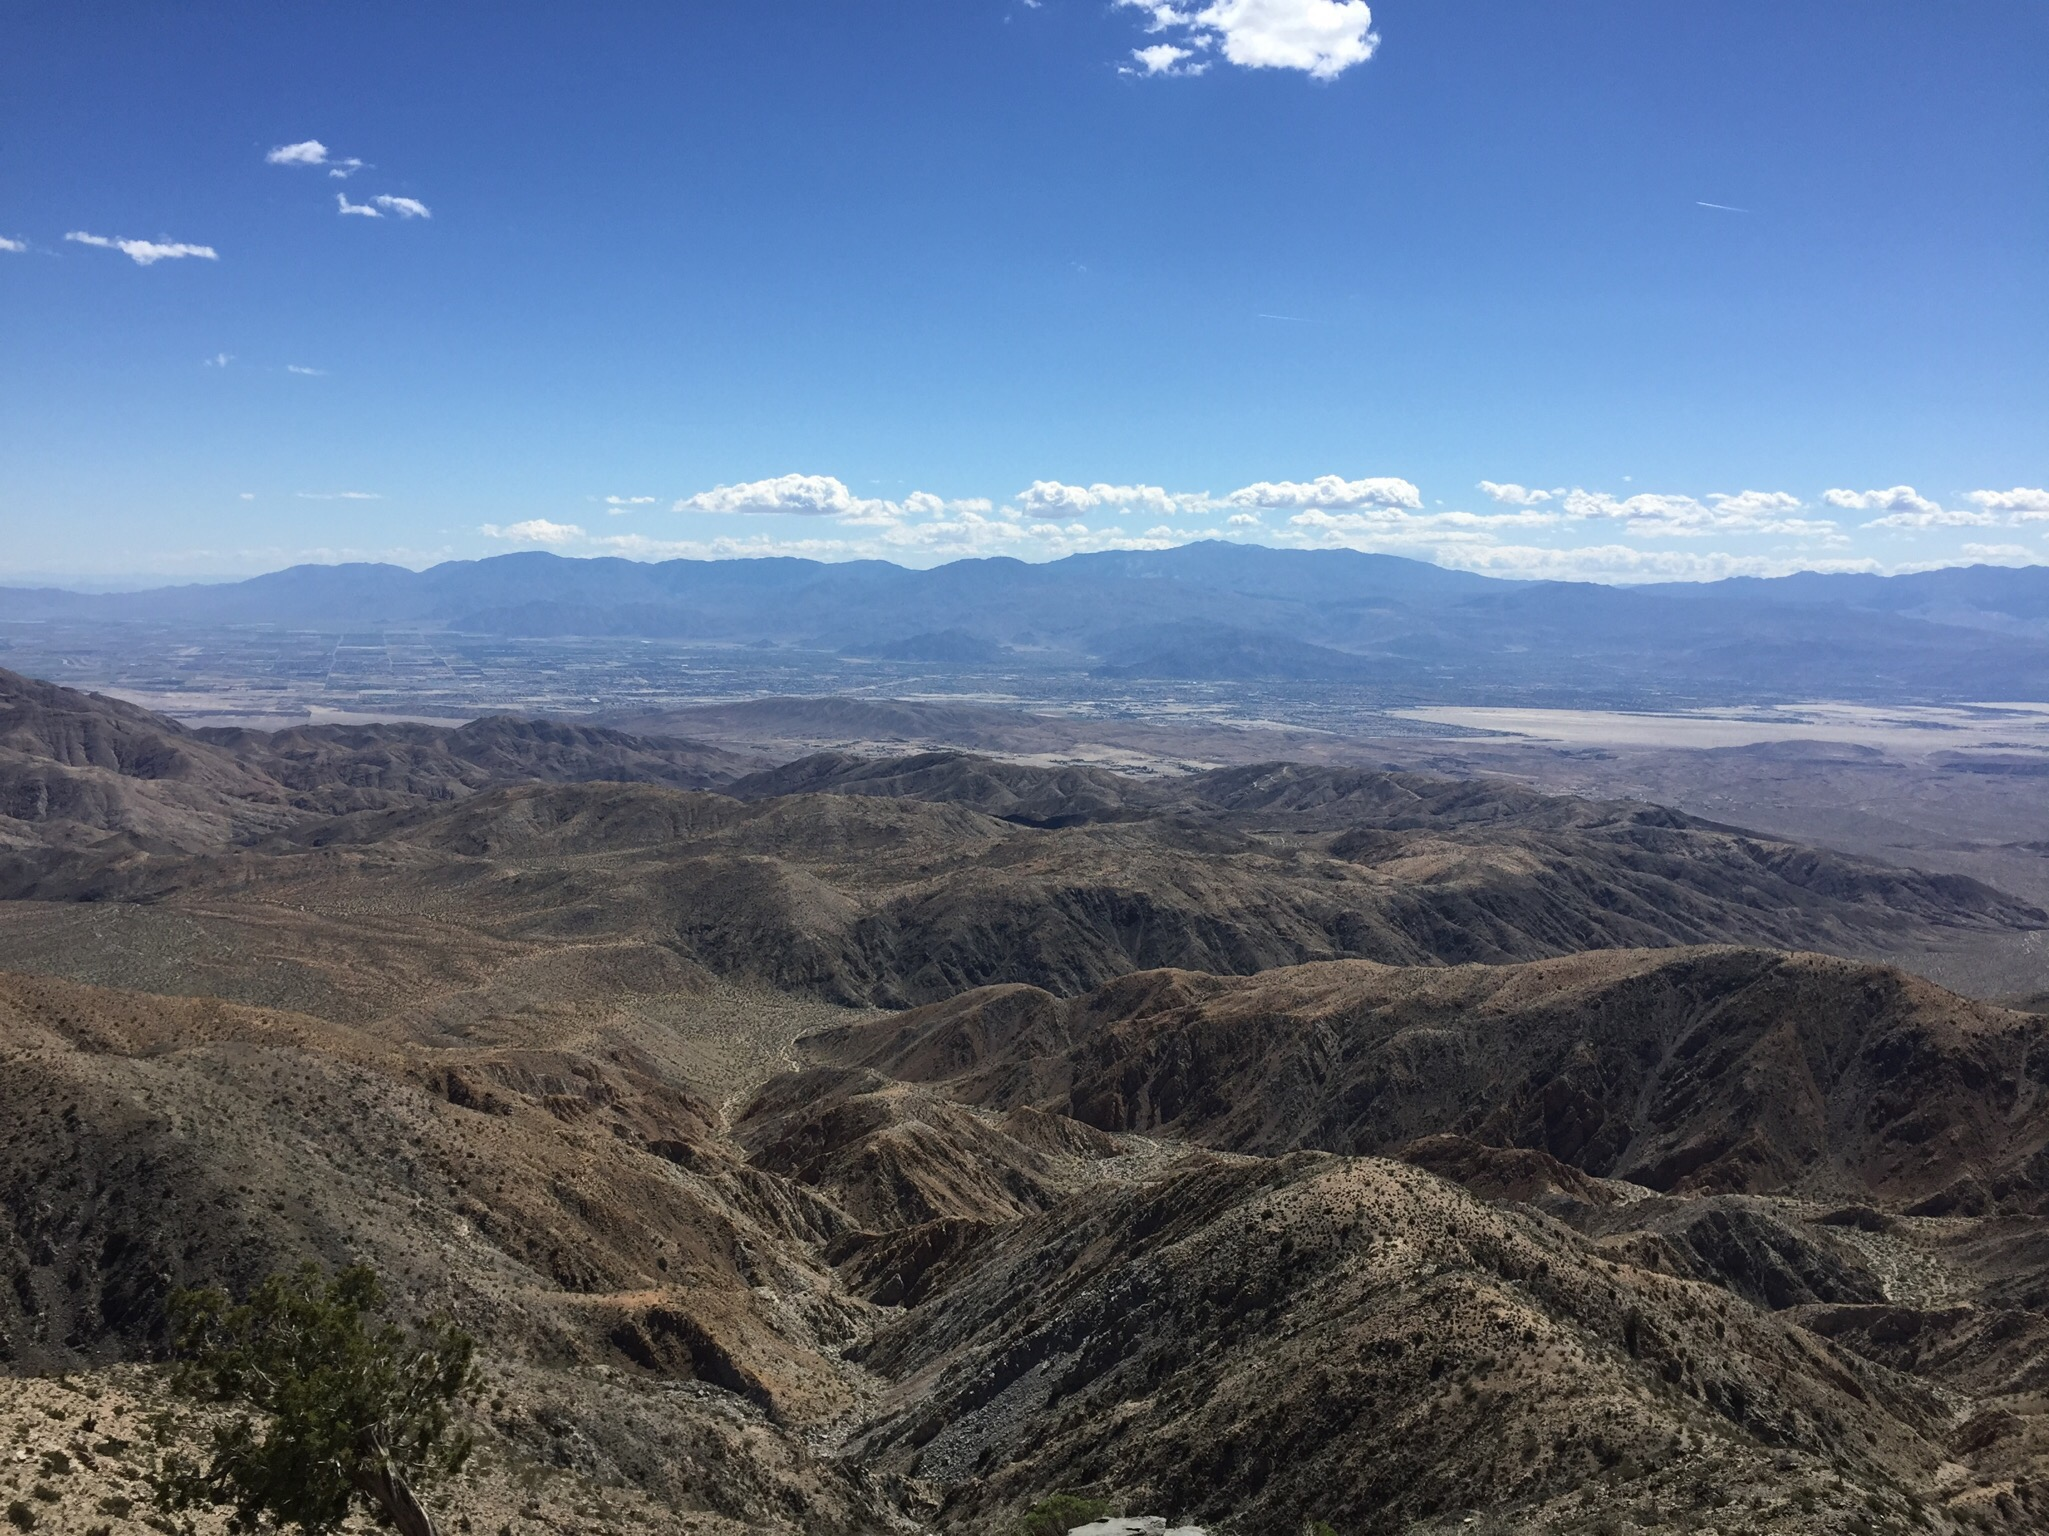 This is actually a pic of the famous St. Andreas fault line from Keys View.  It's stunning to see and gives you a real powerful dose of nature shivers.